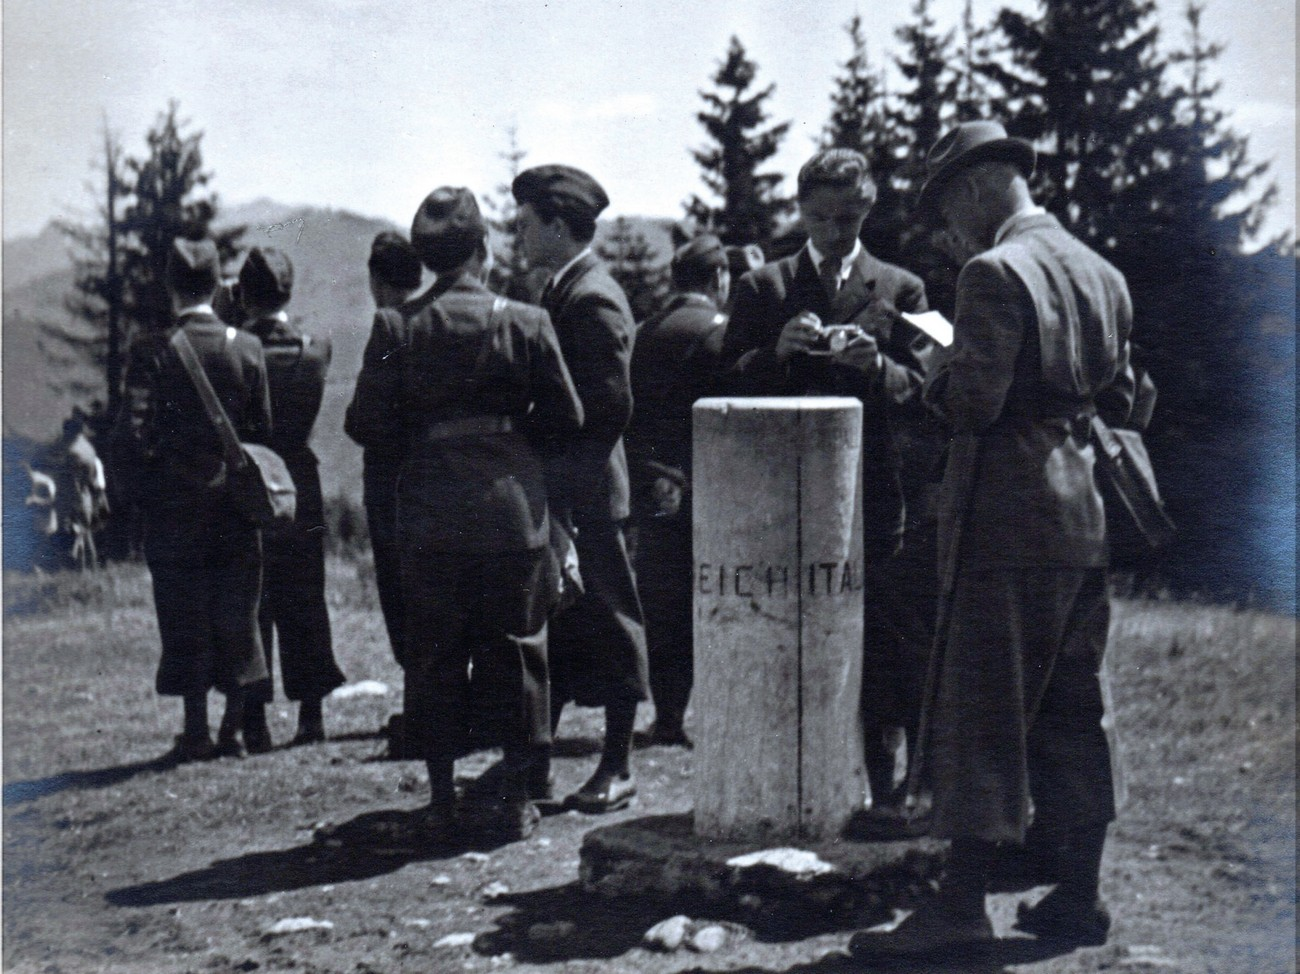 During World War II, the present-day tripoint between Austria, Italy and Slovenia was the tripoint between the Kingdom of Italy, the German Reich and the German Occupation Zone of Lower Carinthia. Unfortunately, the monument from those times has not been recorded, but we can see the tripoint marker from 1939 when it was visited by the underage King of Yugoslavia Peter II Karađorđević. Source: Nani Poljanec, Ljudski muzej Rogaška Slatina/Rogaška Slatina Folk Museum.